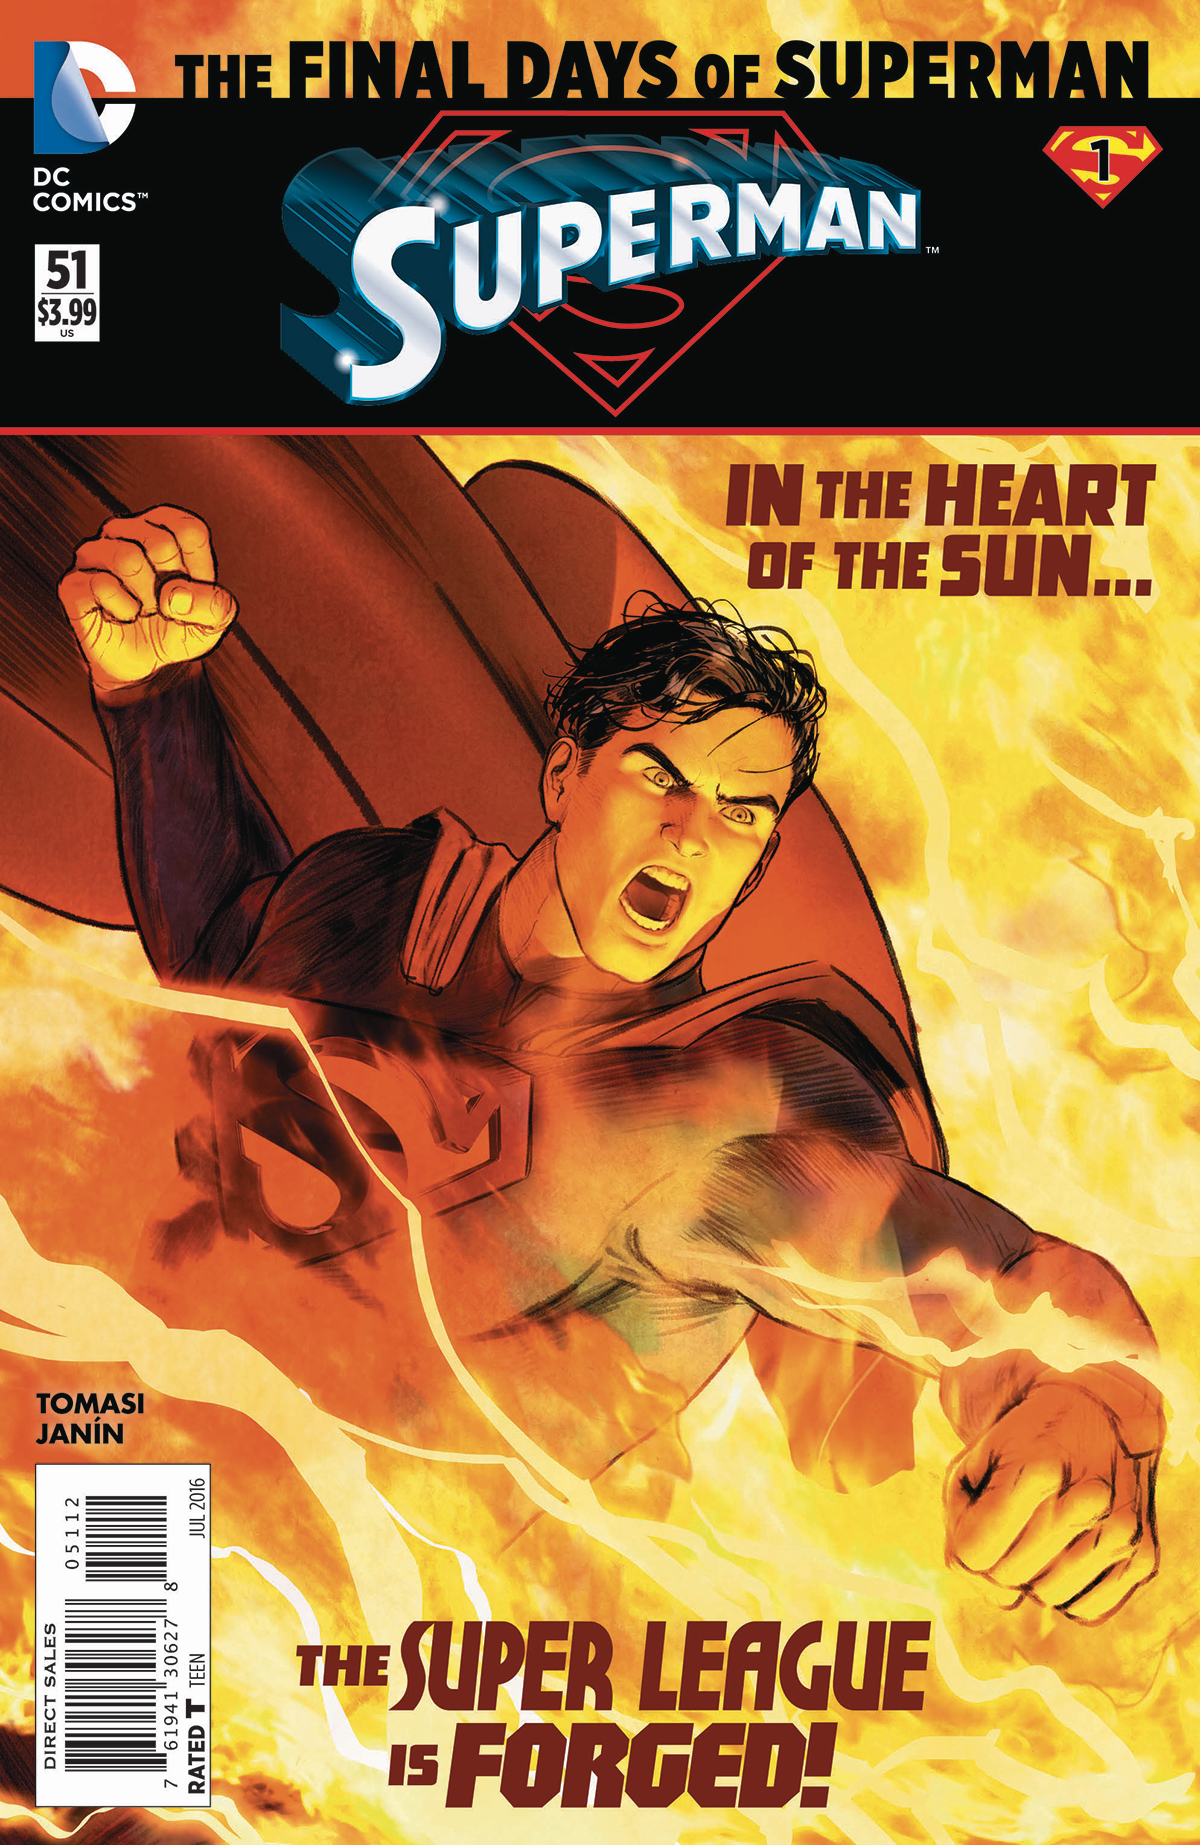 SUPERMAN #51 2ND PTG (FINAL DAYS)